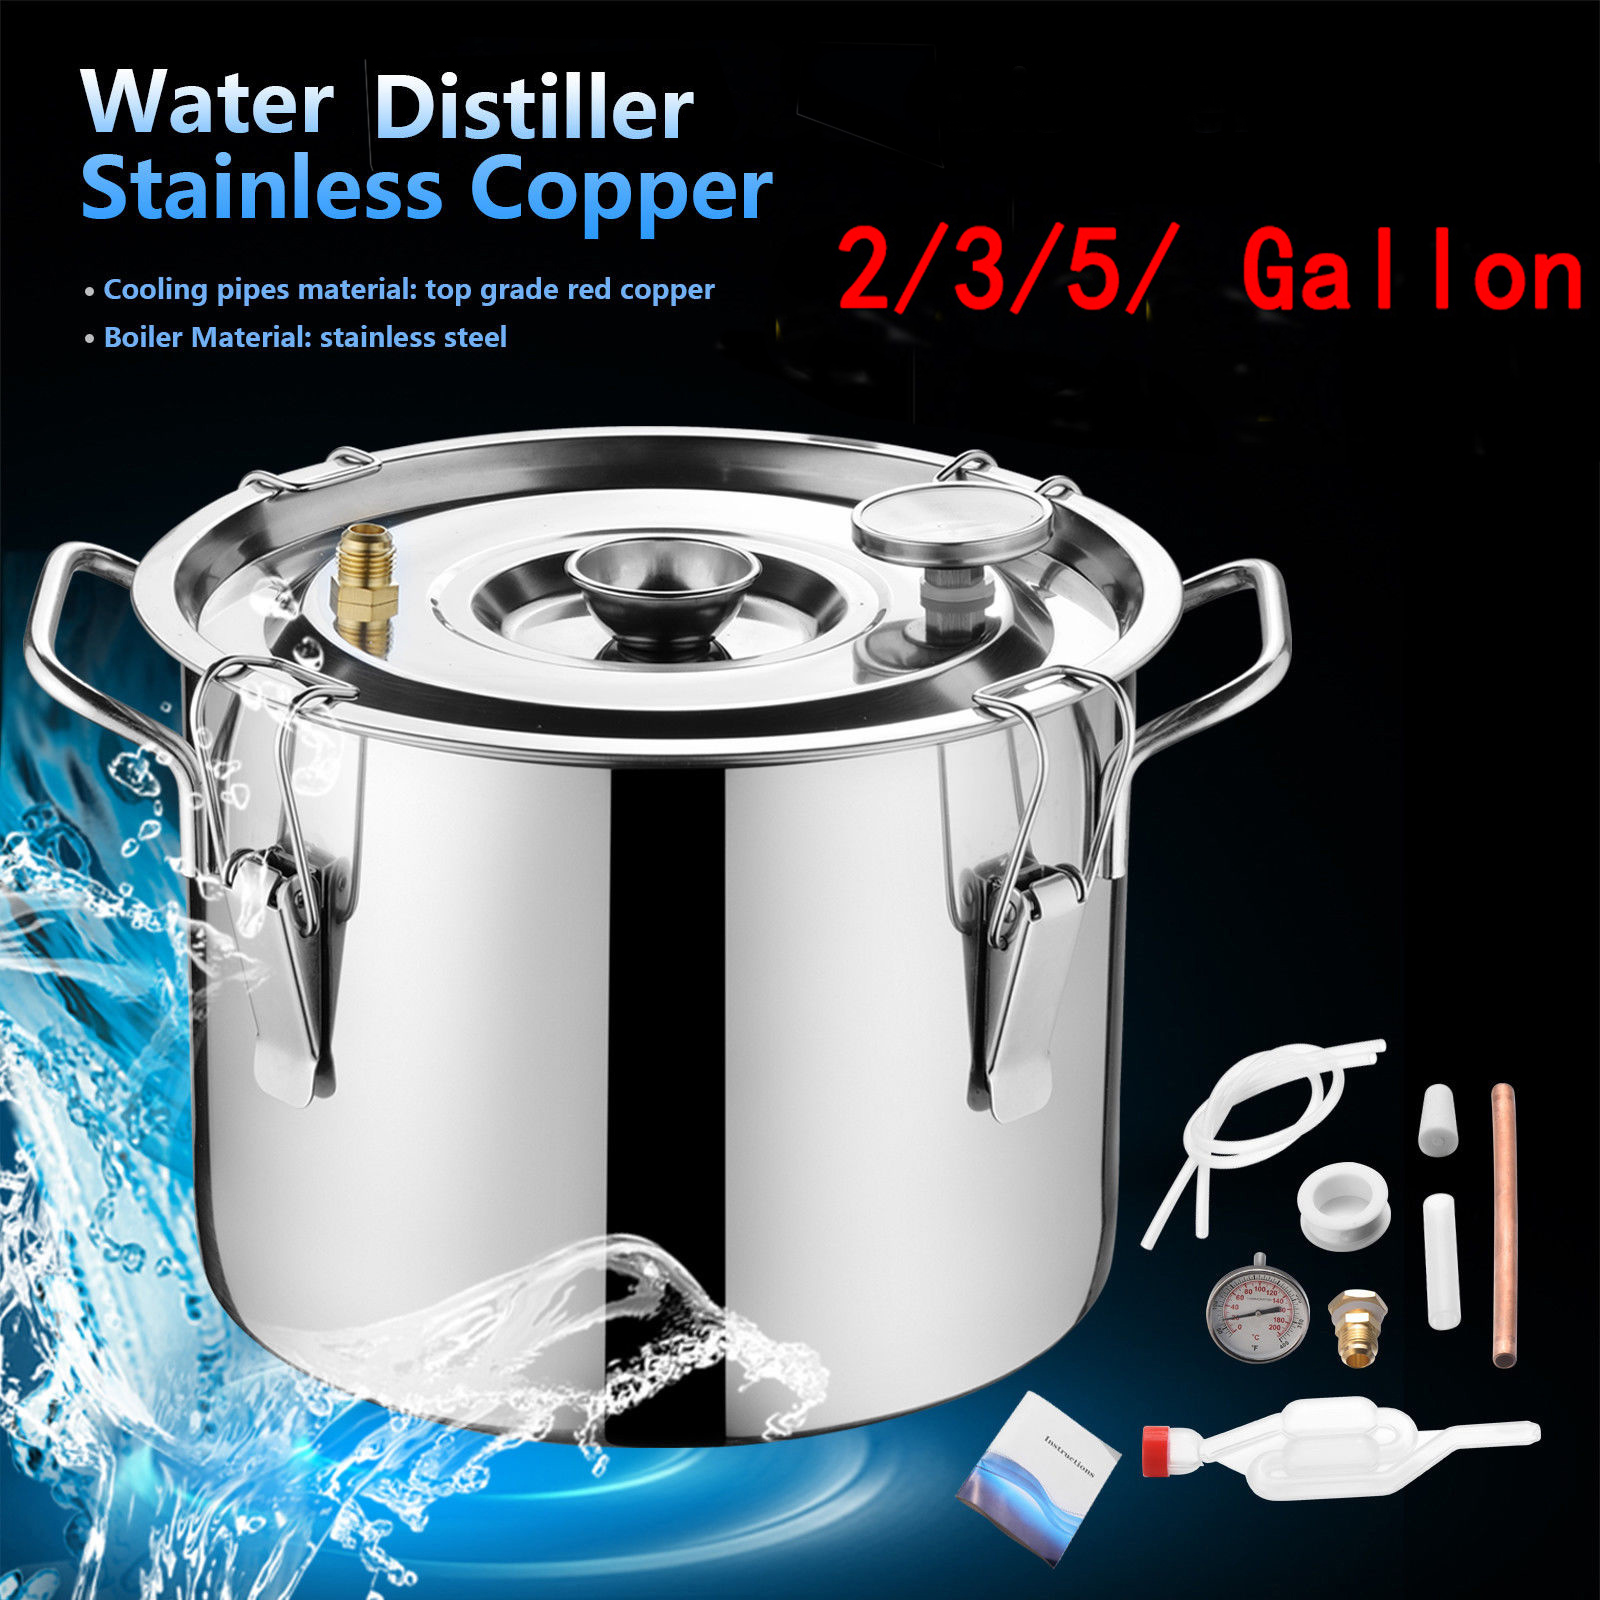 Ktaxon 5 Gallon Distilled Water Machine, Moonshine Still Stainless Steel  Copper Spirits Boiler Distiller Equipment, for Home Distilling Water